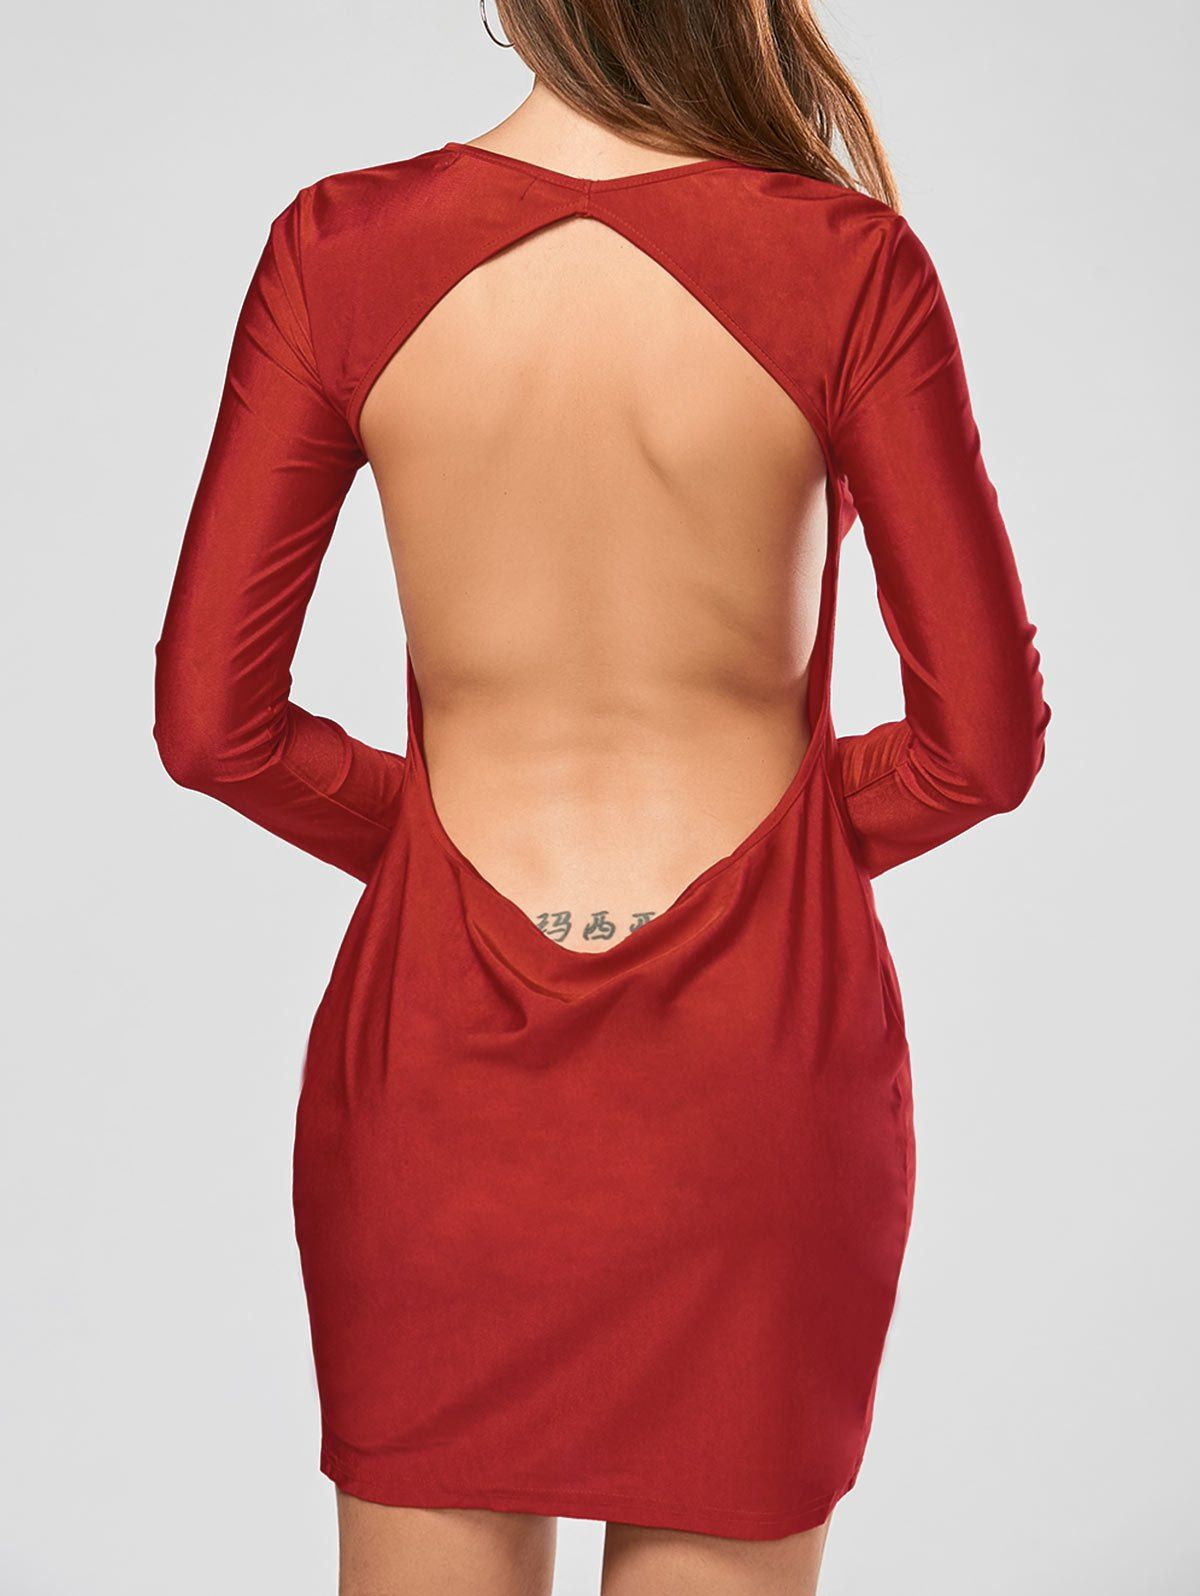 Robe rouge dos nu sexy classe